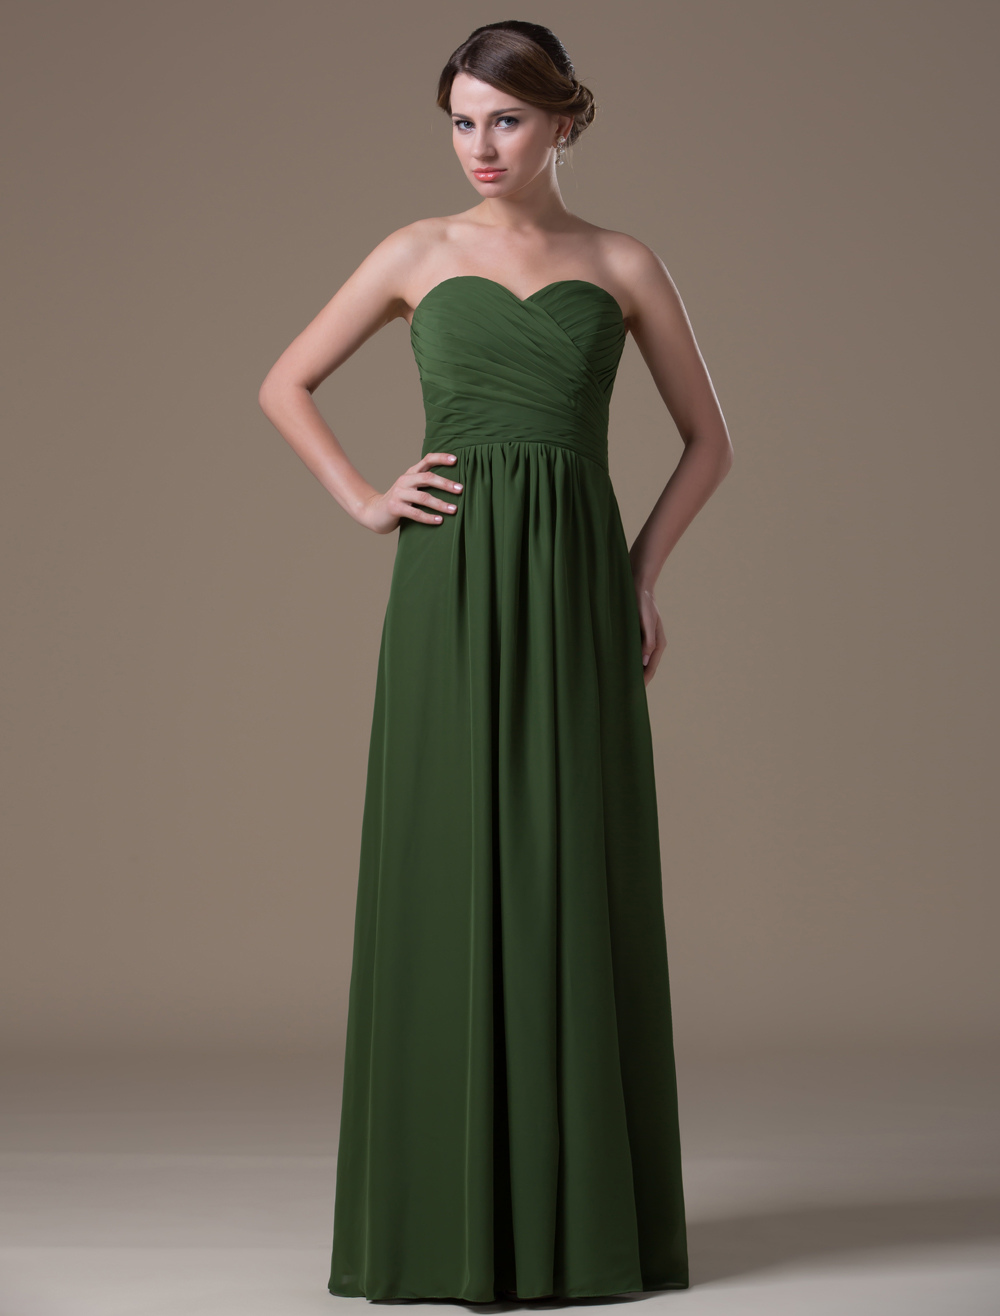 A-line Green Chiffon Maternity Bridesmaid Dress with Empire Waist